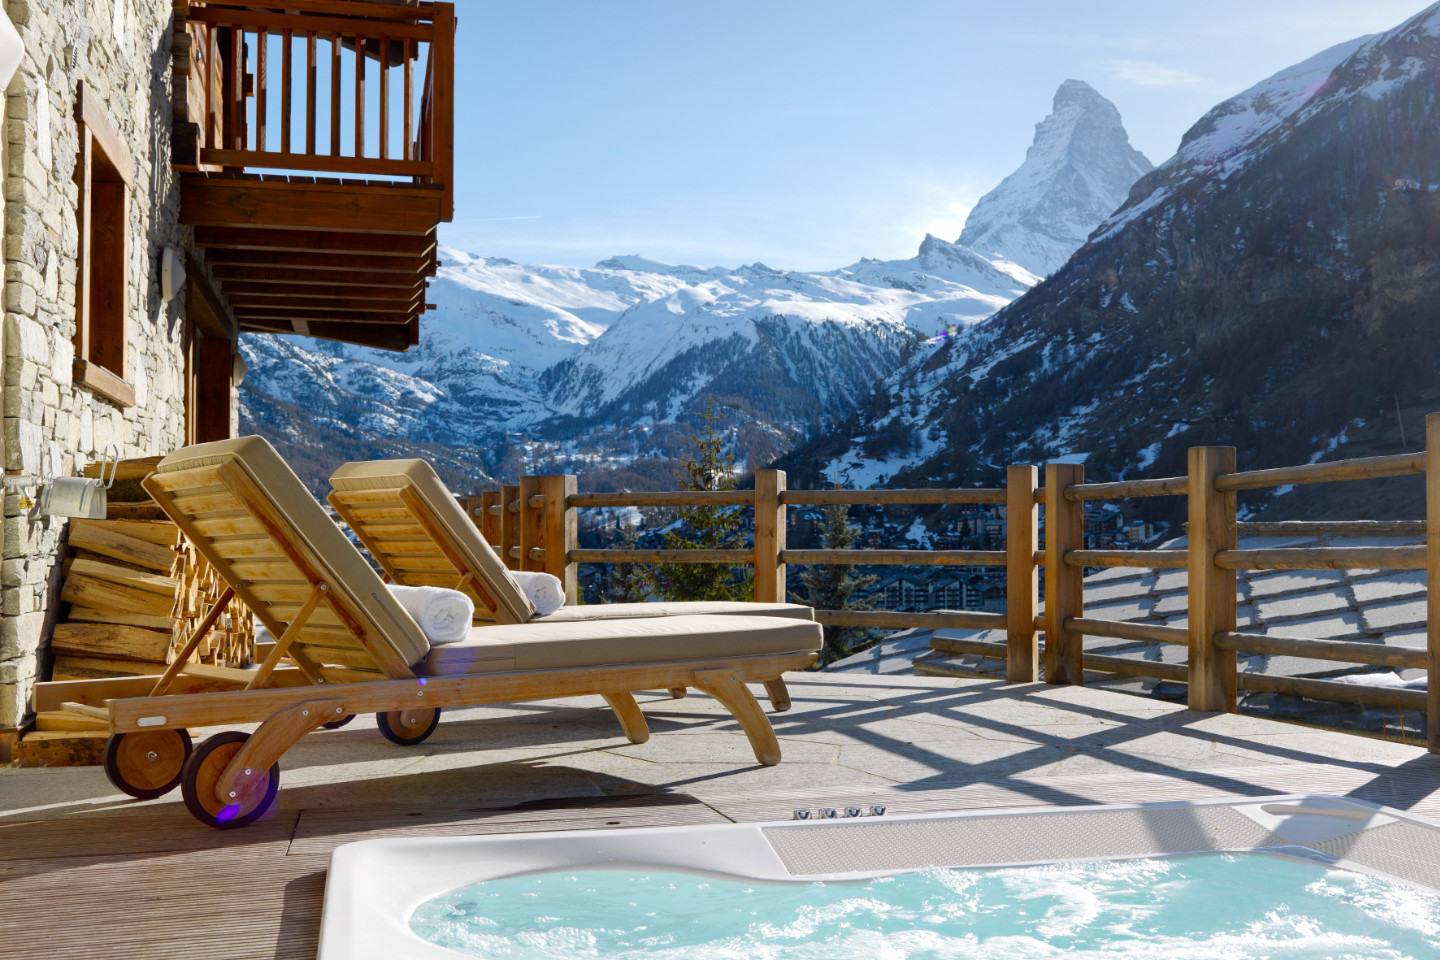 Chalet Maurice hot tub with Matterhorn views, Zermatt